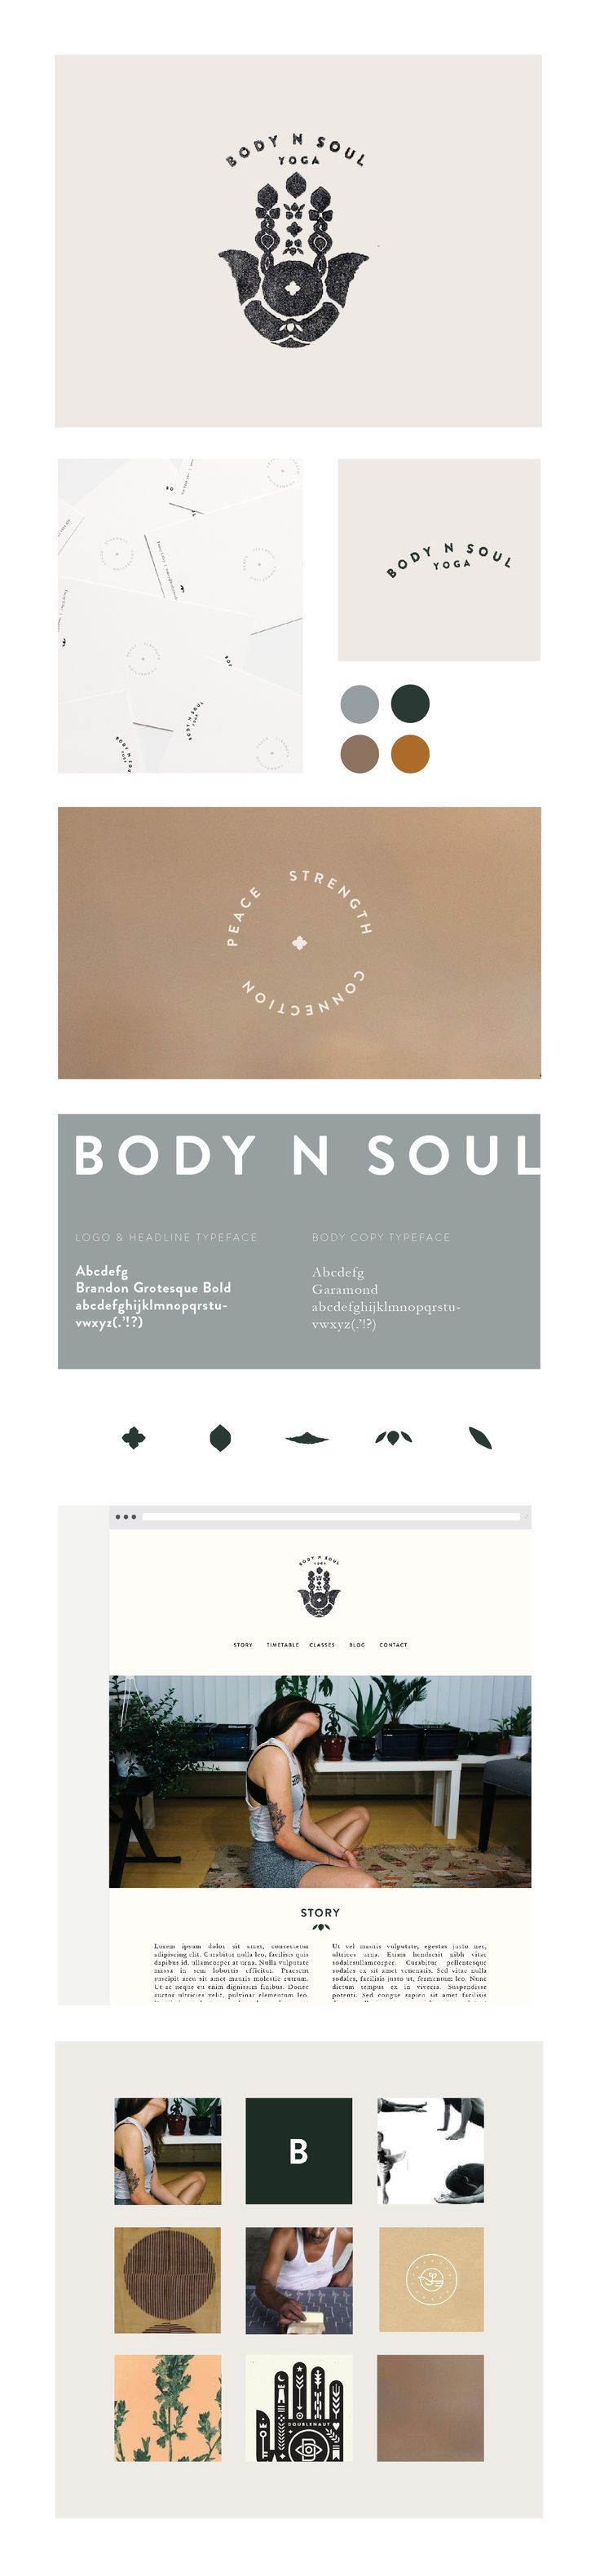 Simple, modern logo design by Kelsey Hutchinson. Click the link to see more. http://kelseyhutchinson.com/Body-n-Soul-Yoga Brand identity, print and web design for Body n Soul Yoga, a yoga studio based in Central Queensland, Australia. The essence of the studio is based on three words, peace, strength and connection, with inspiration taken from Indian block printing and yogic motifs…